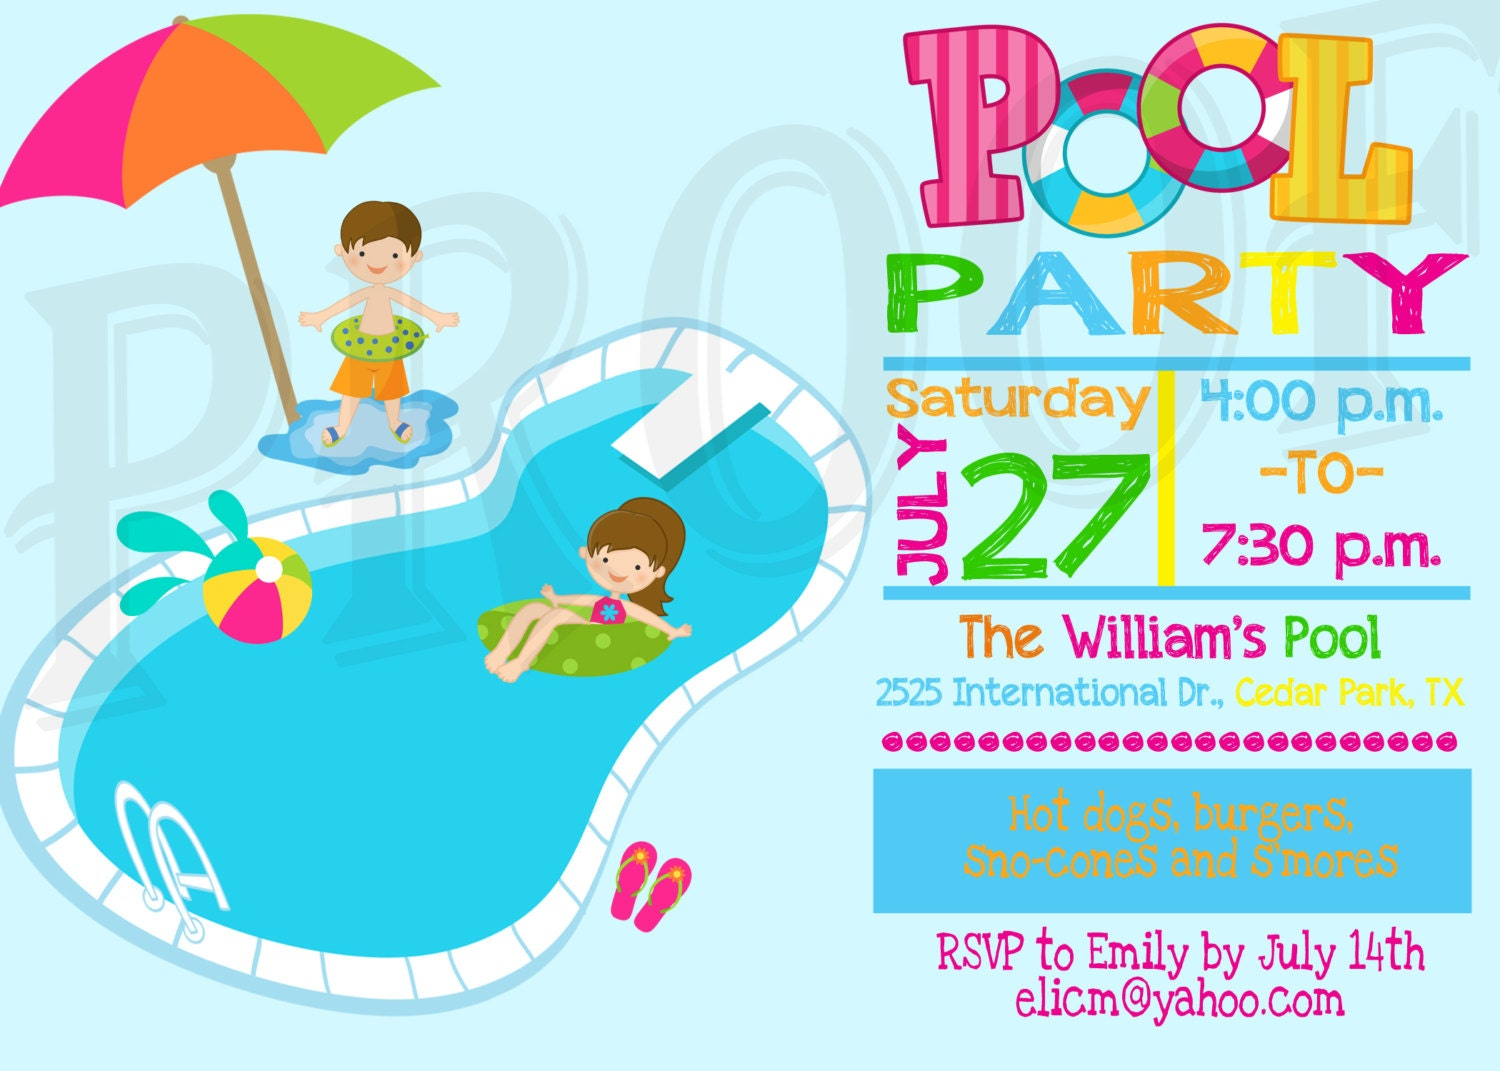 Cool Party Invitation Wording for luxury invitation layout